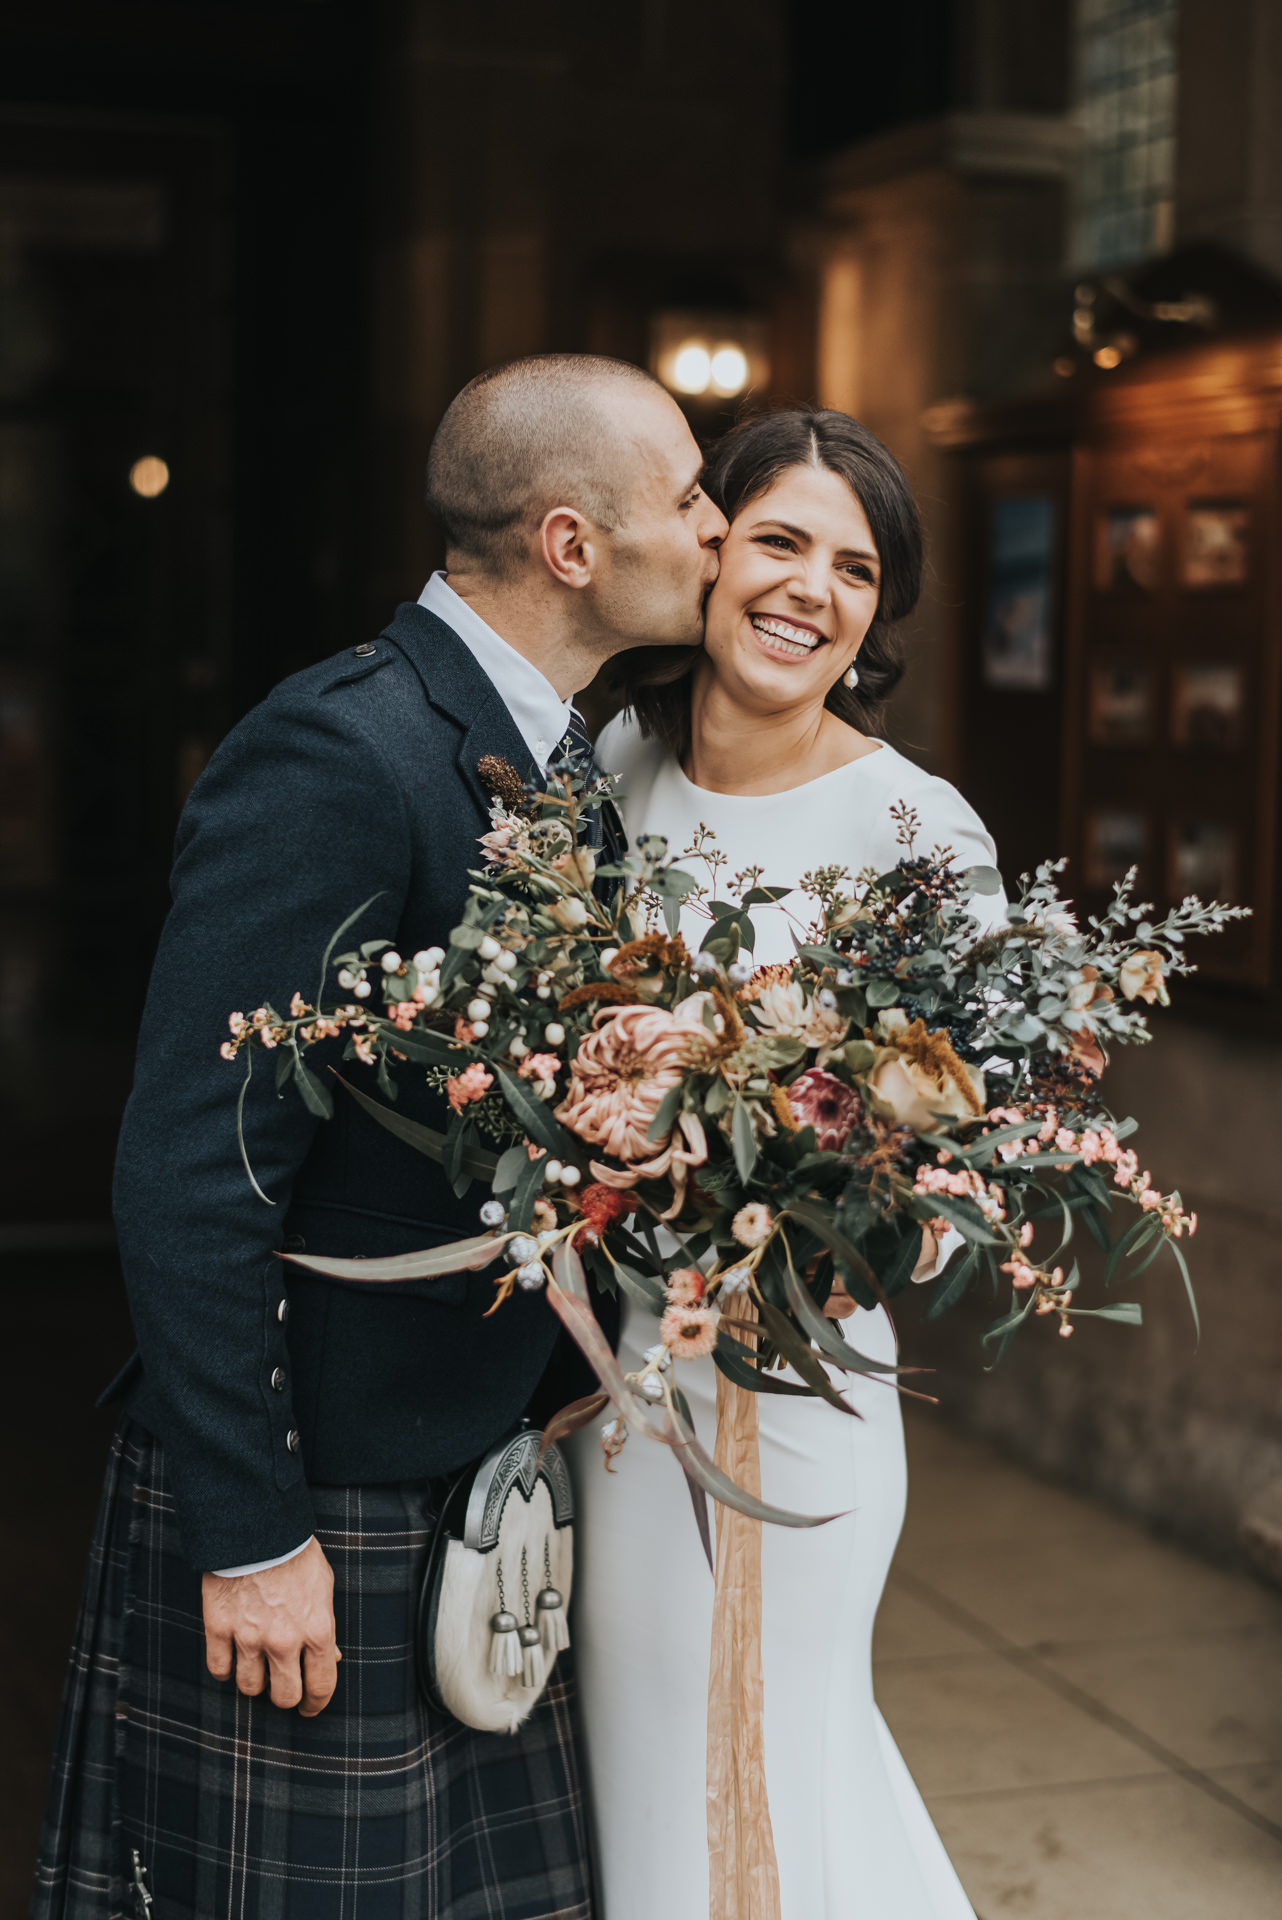 Cornhill Castle wedding photos, wedding Cornhill Castle, wedding photographer Edinburgh, wedding photographer Scotland, wedding photographer Glasgow, Karol Makula Photography, wedding photography Scotland, Scotland wedding photographer